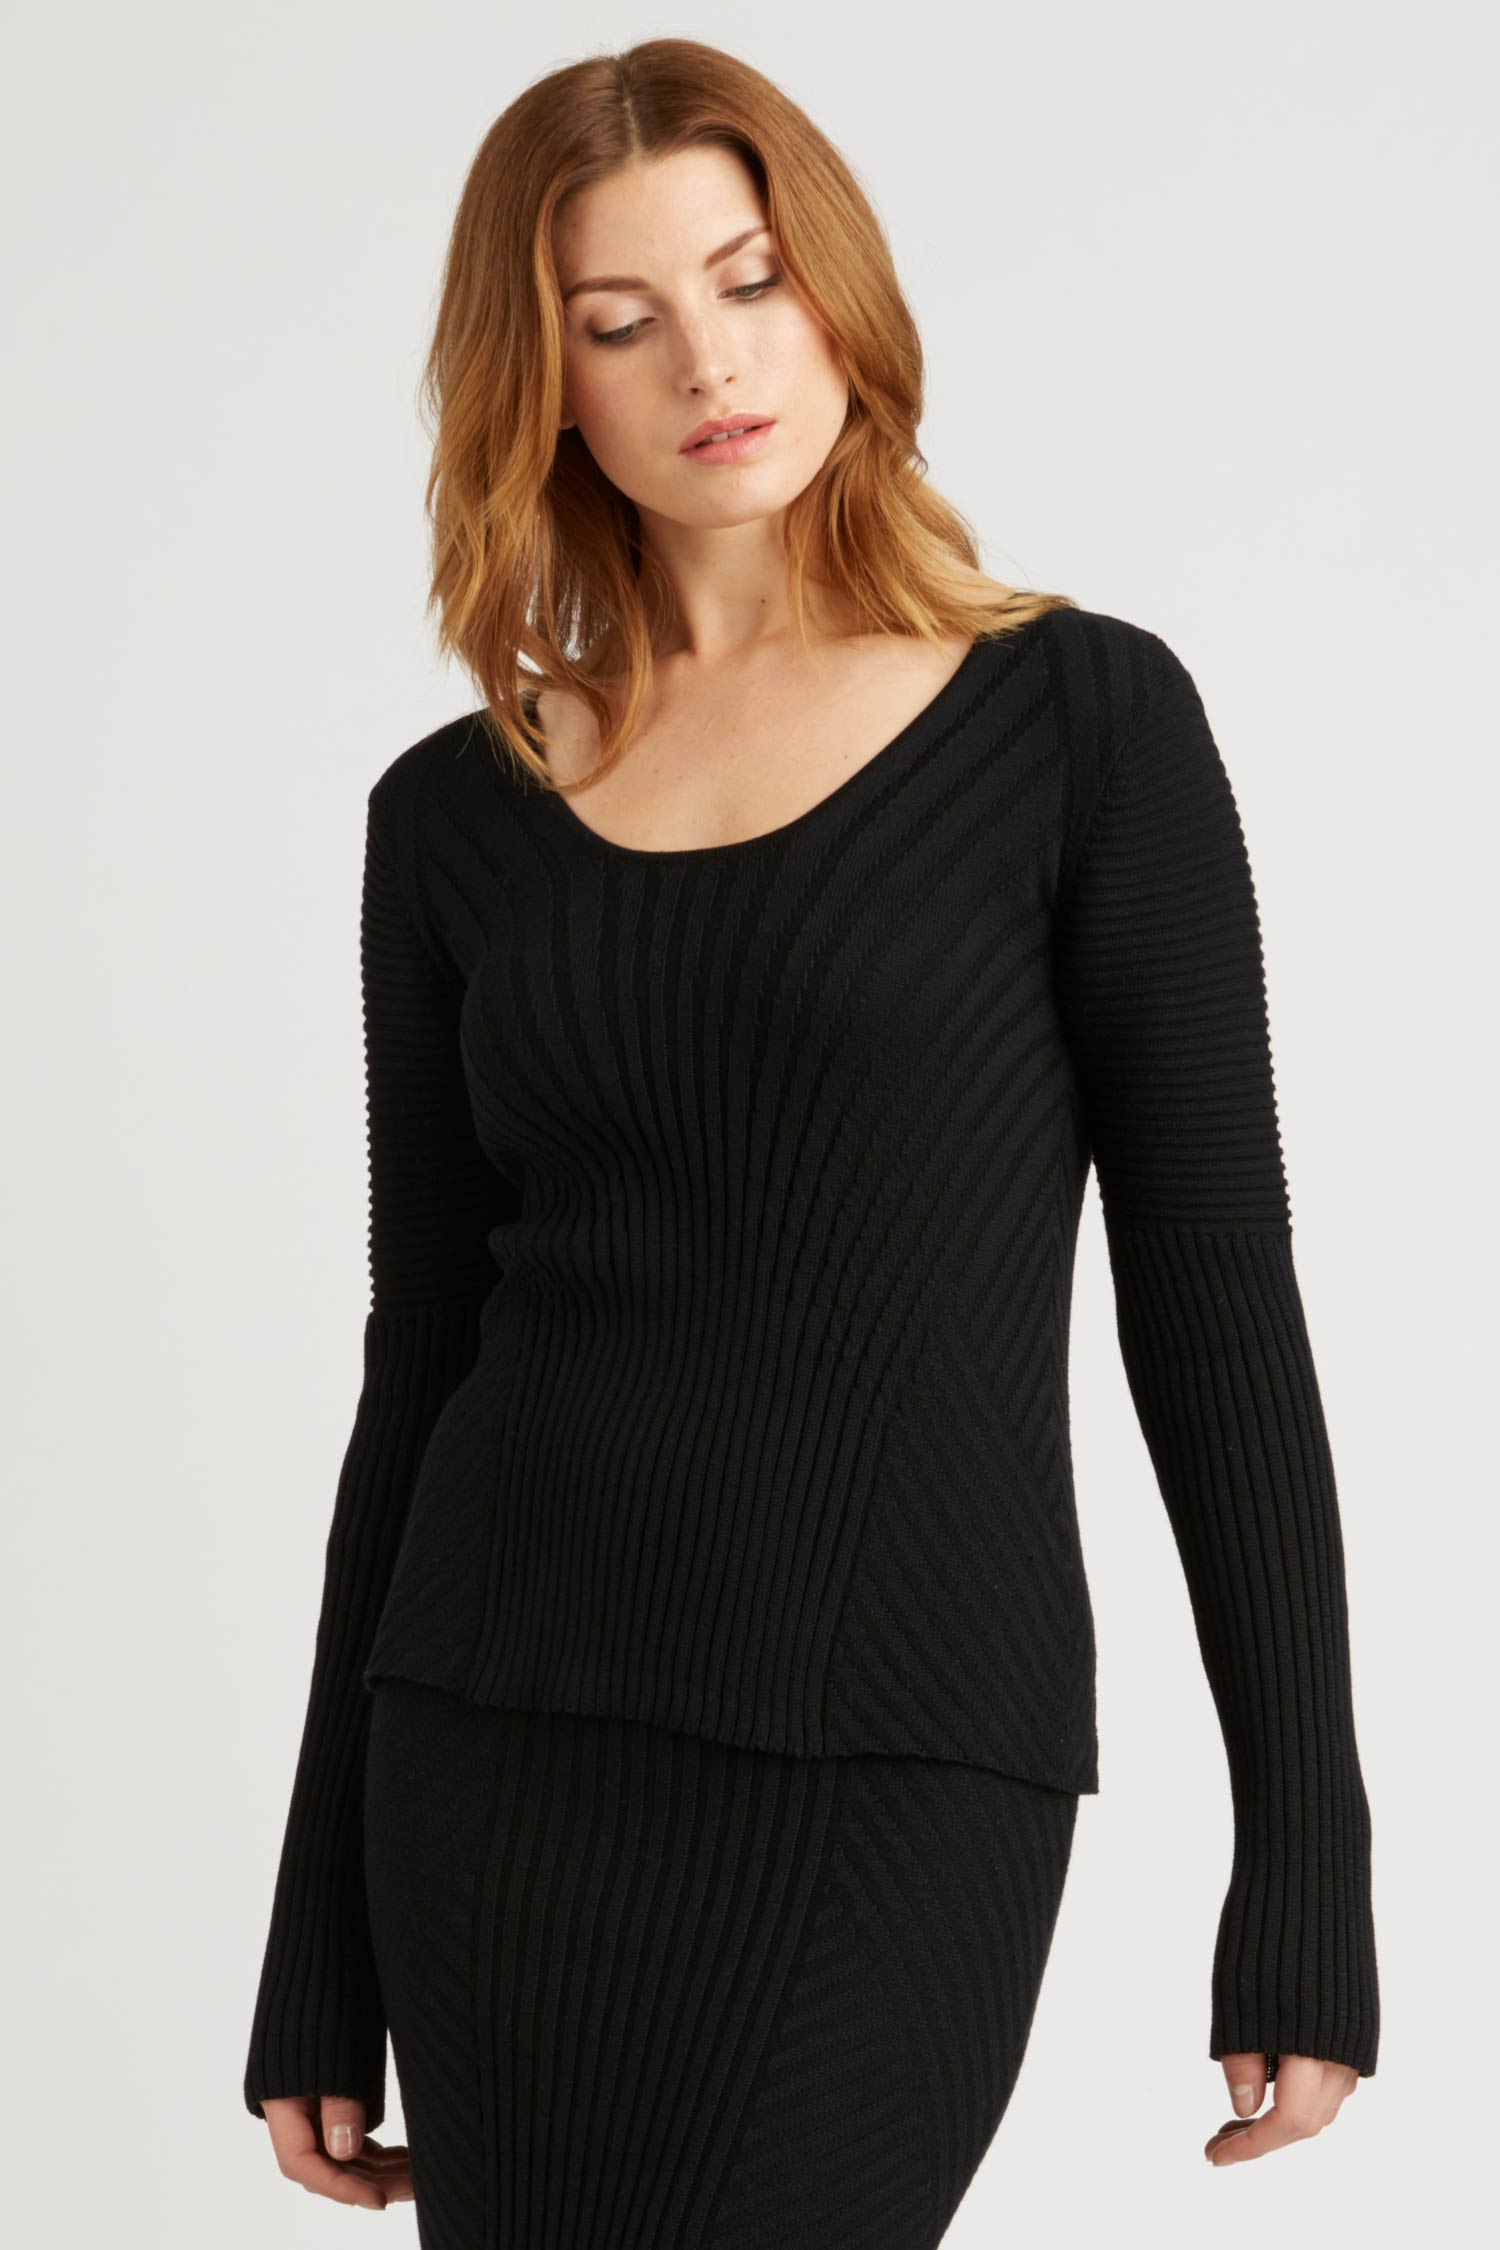 Womens Knit Pullover Top in Black | Organic Cotton Sweater